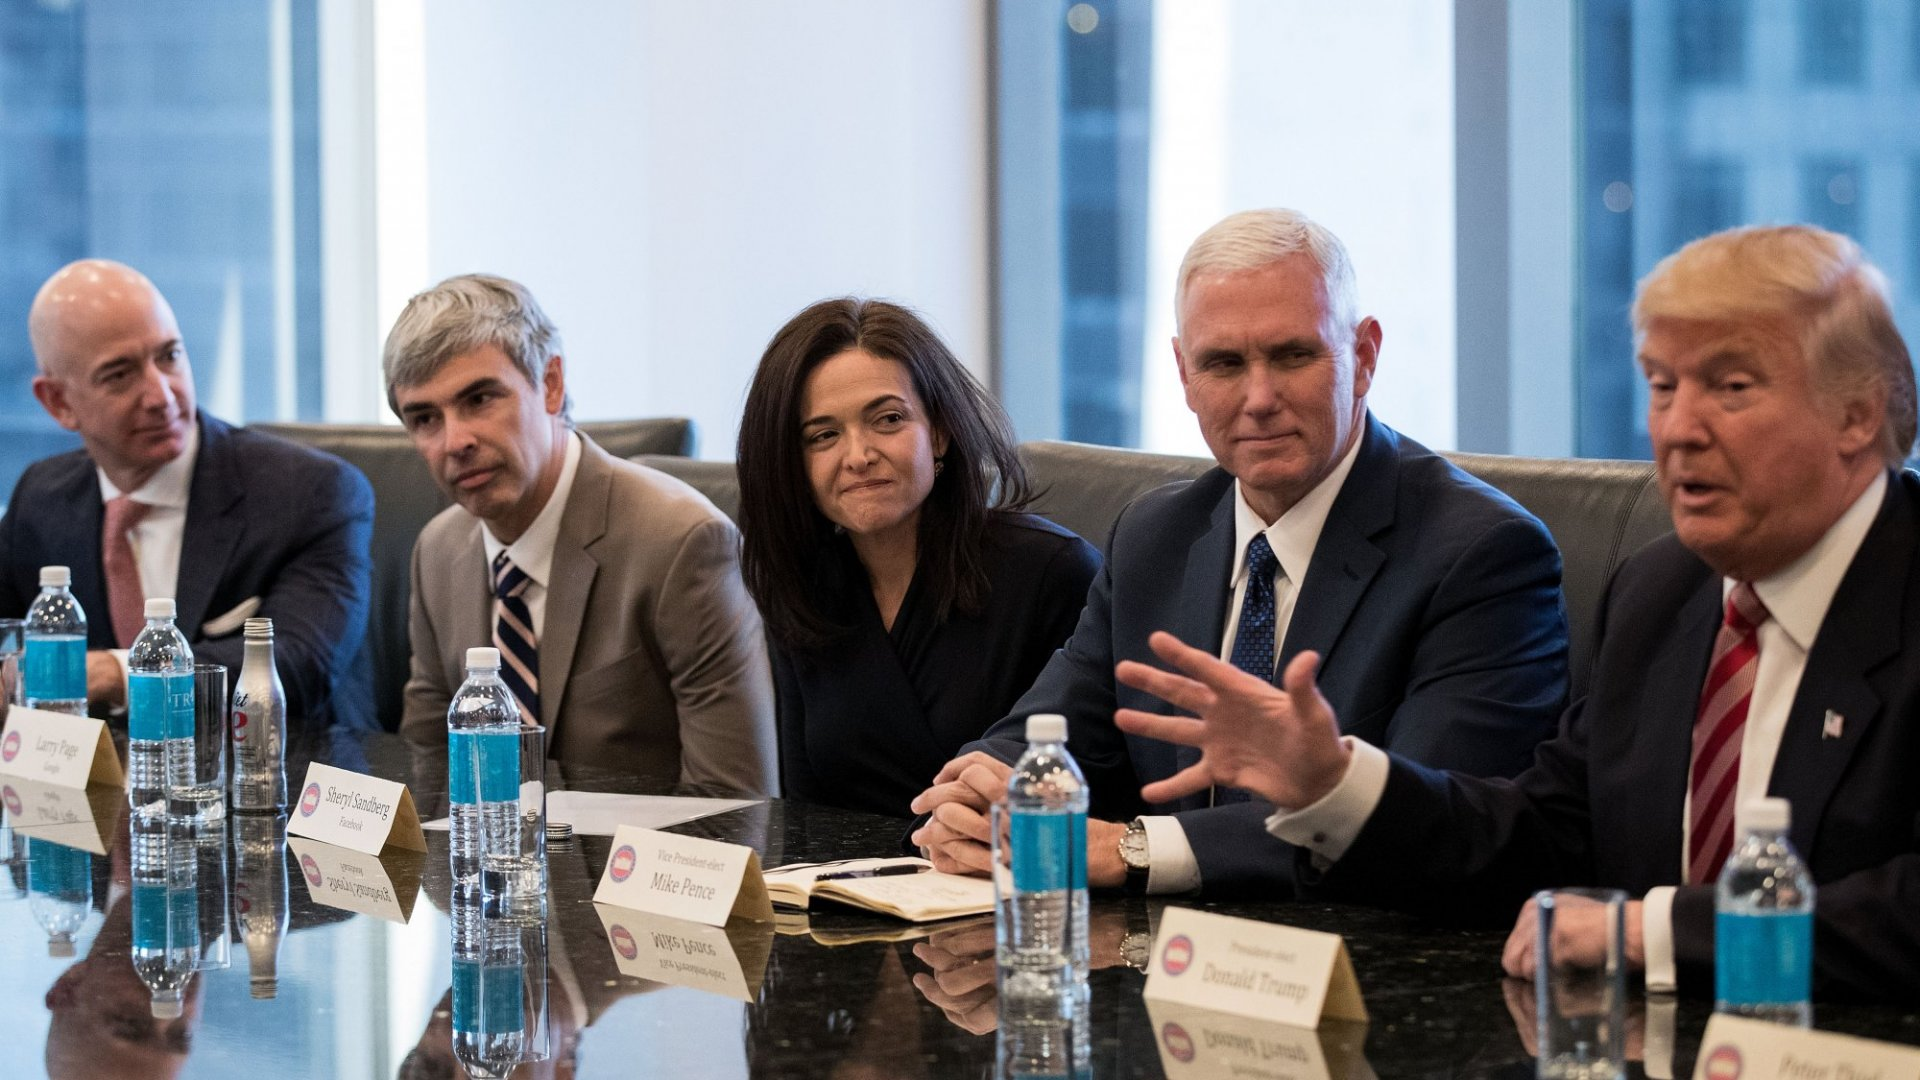 (L to R) Jeff Bezos, chief executive officer of Amazon; Larry Page, chief executive officer of Alphabet (parent company of Google); Sheryl Sandberg, chief operating officer of Facebook; and Vice President-elect Mike Pence listen as President-elect Donald Trump speaks during a meeting of technology executives at Trump Tower, December 14, 2016 in New York City.